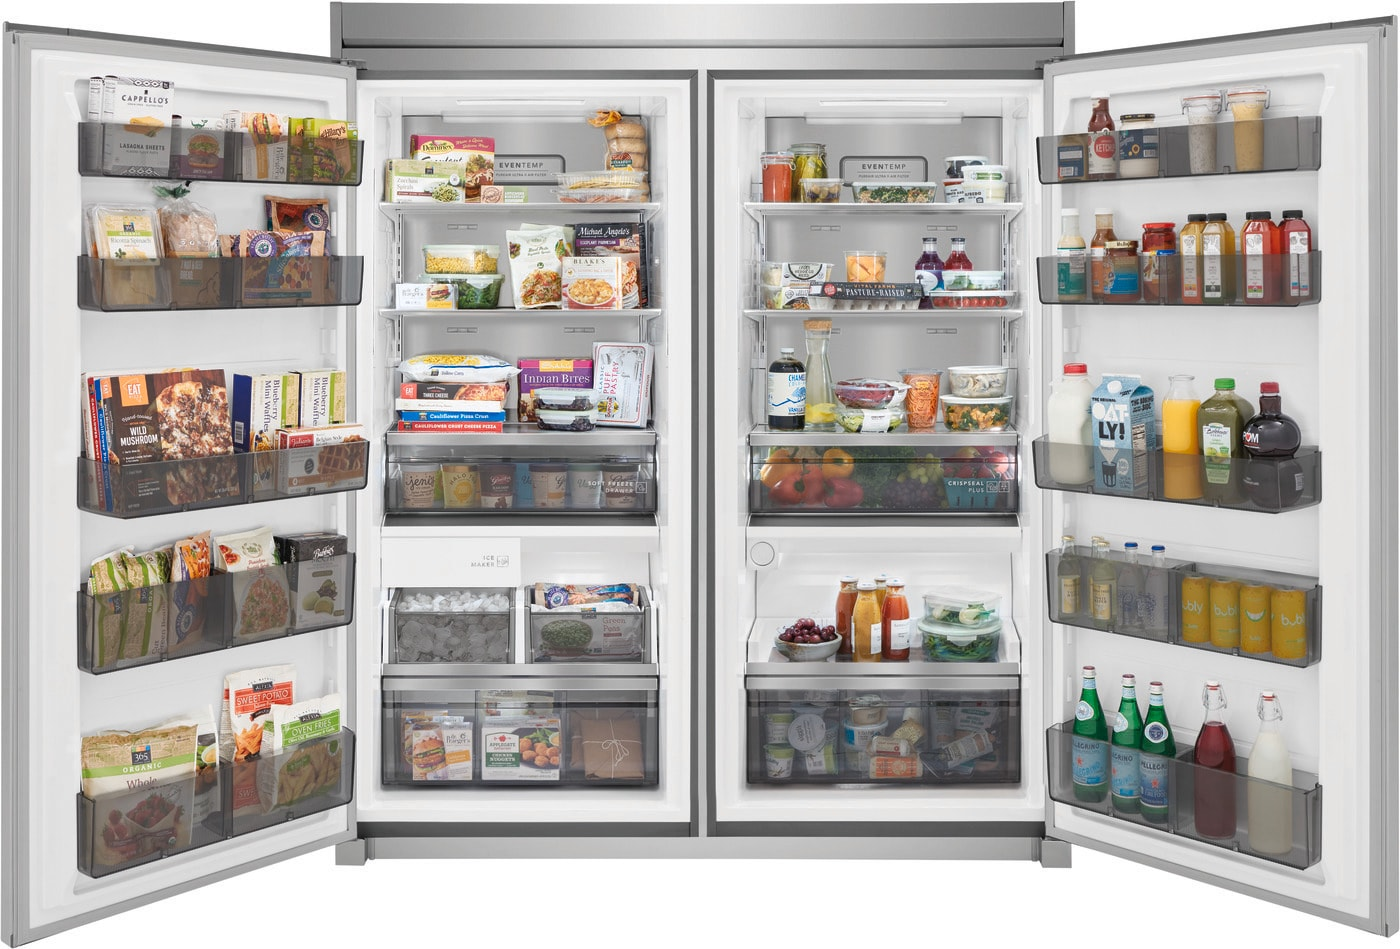 19 Cu. Ft. Single-Door Refrigerator Stainless Steel FPRU19F8WF